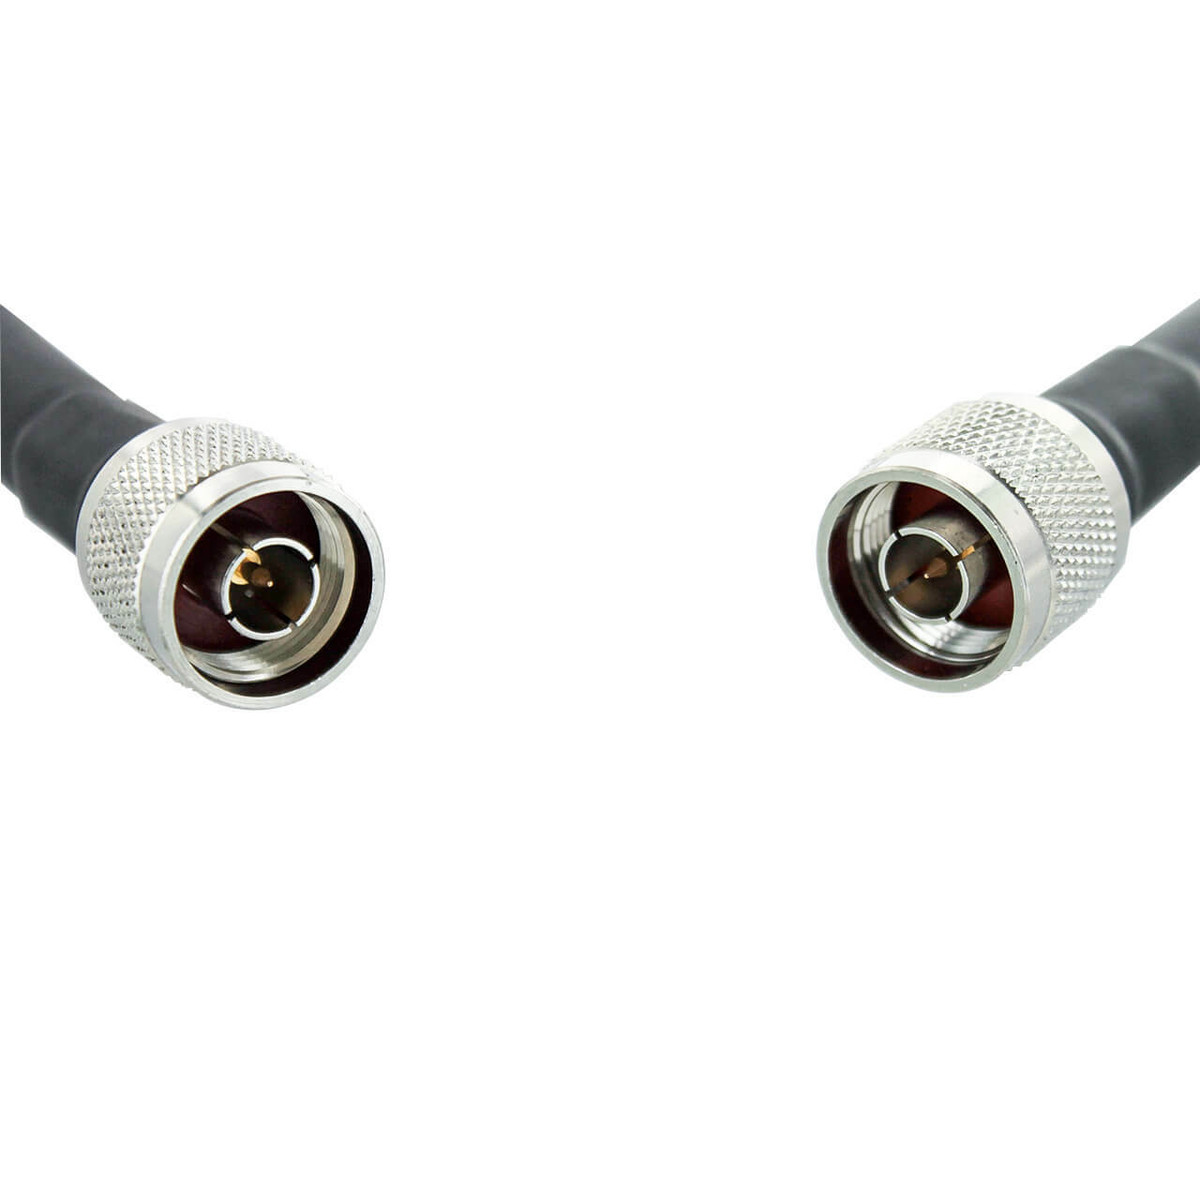 Bolton Tech Bolton Technical N-Male to N-Male Bolton400 Ultra Low-Loss Coax Cable or 10 ft Cable